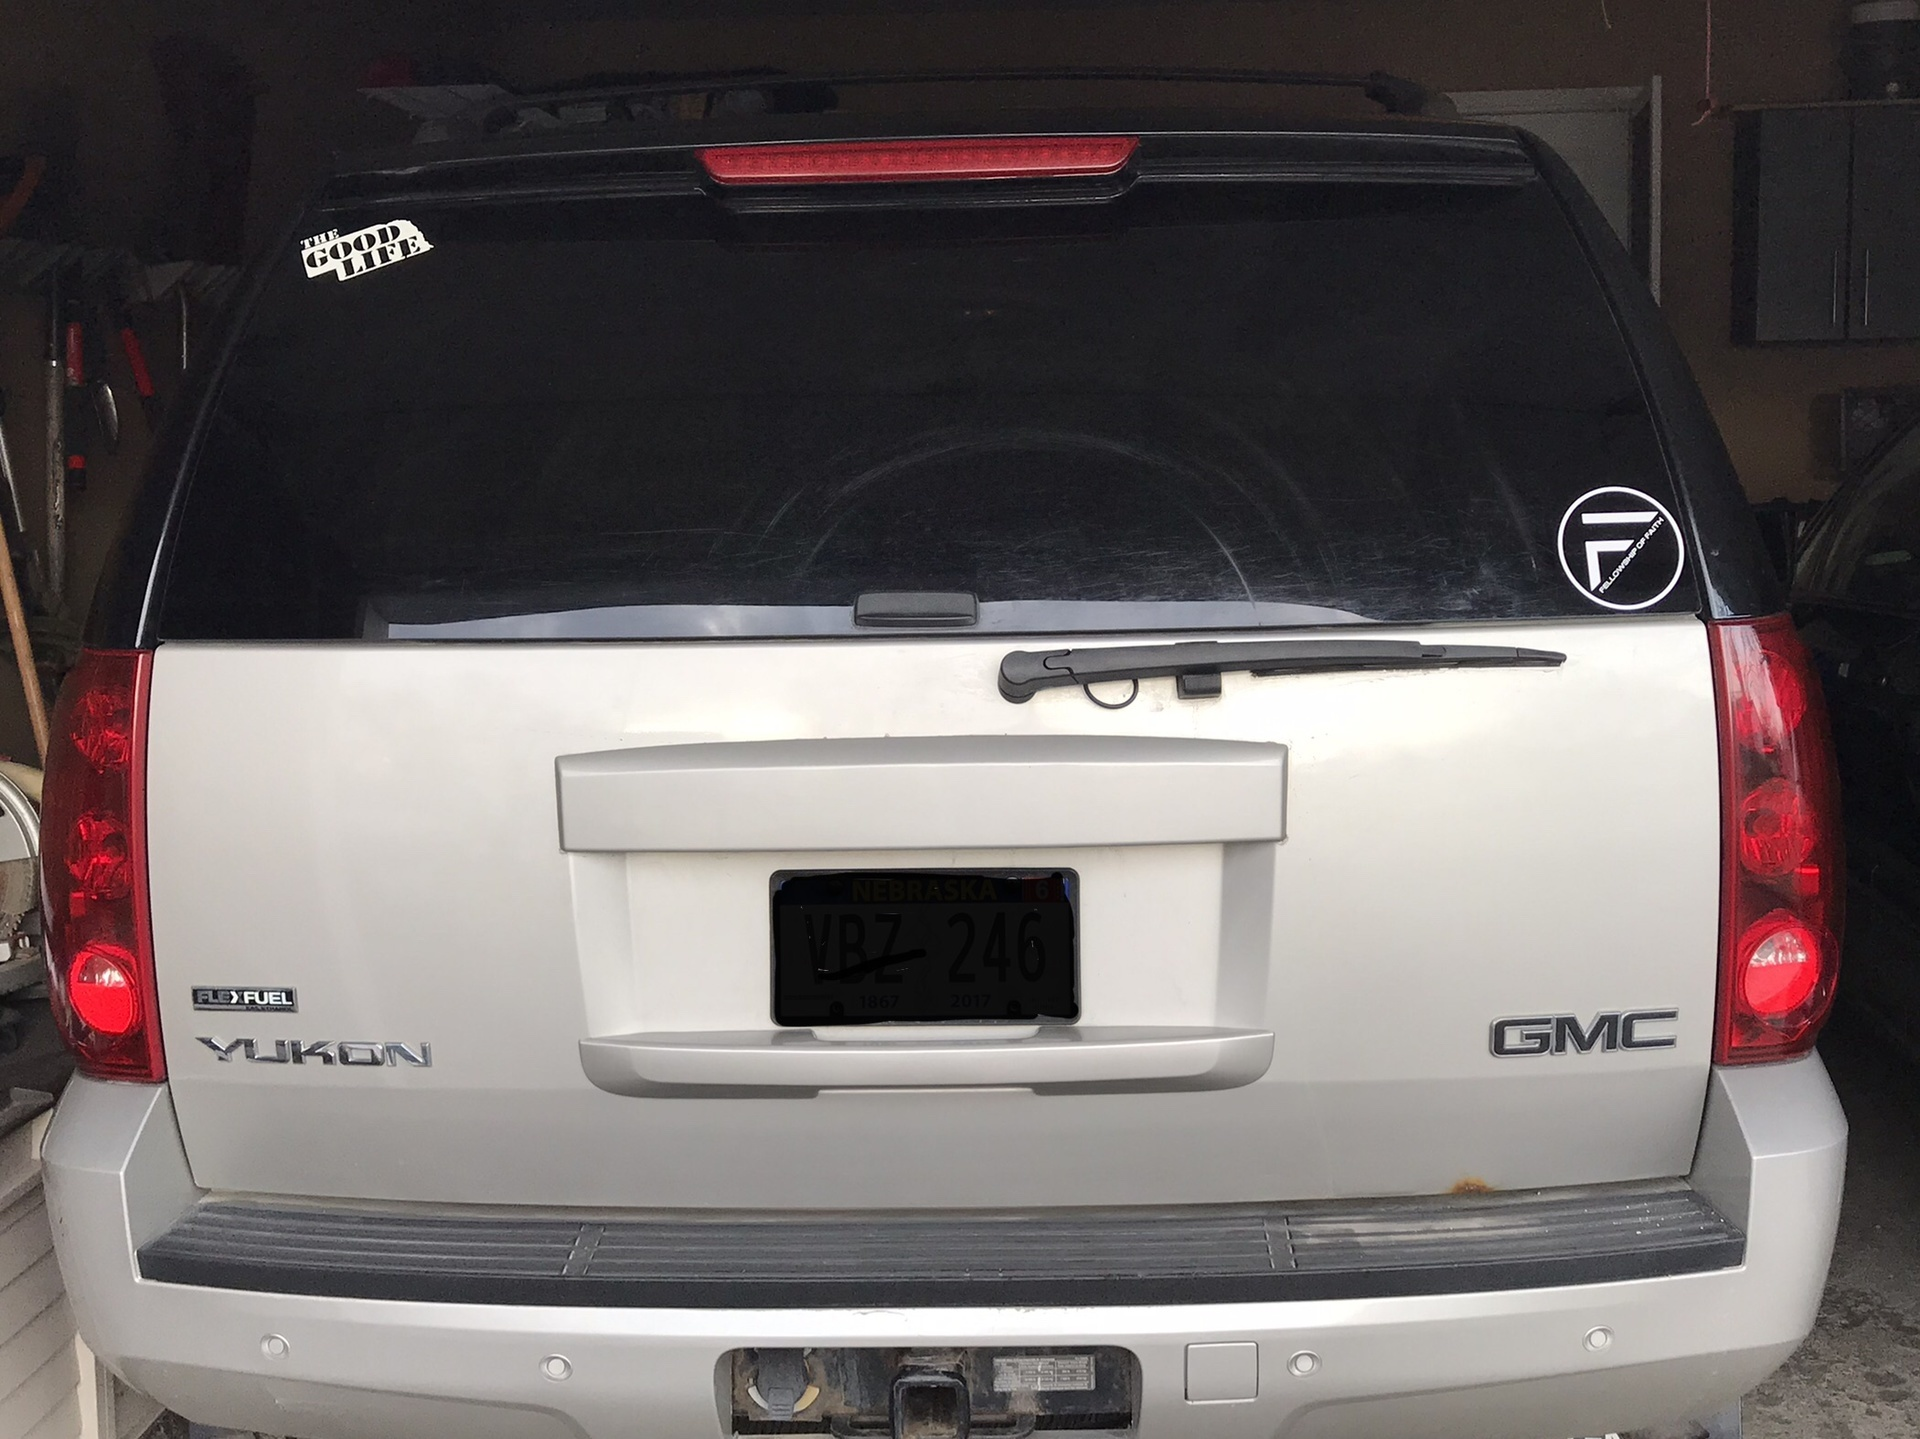 Steve's photograph of their Transfer Stickers